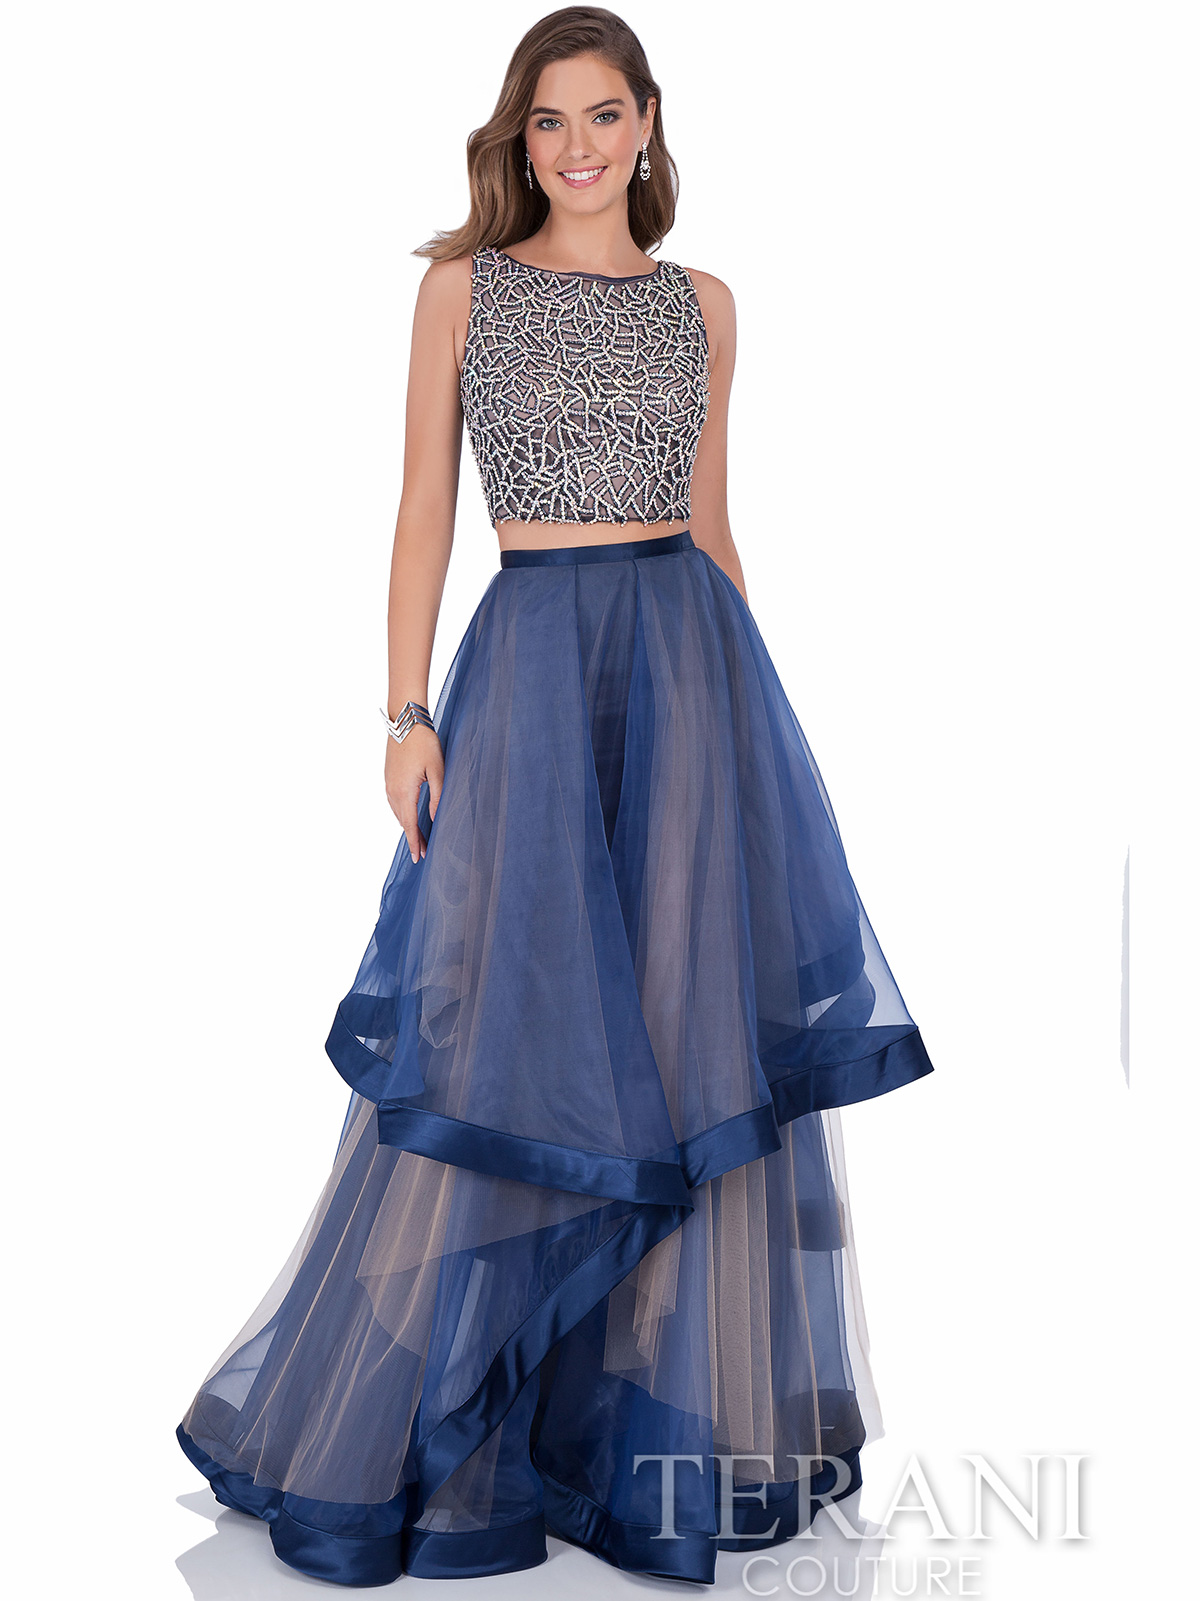 Terani Couture 1611P1369 Layered Illusion Skirt Prom Dress ...